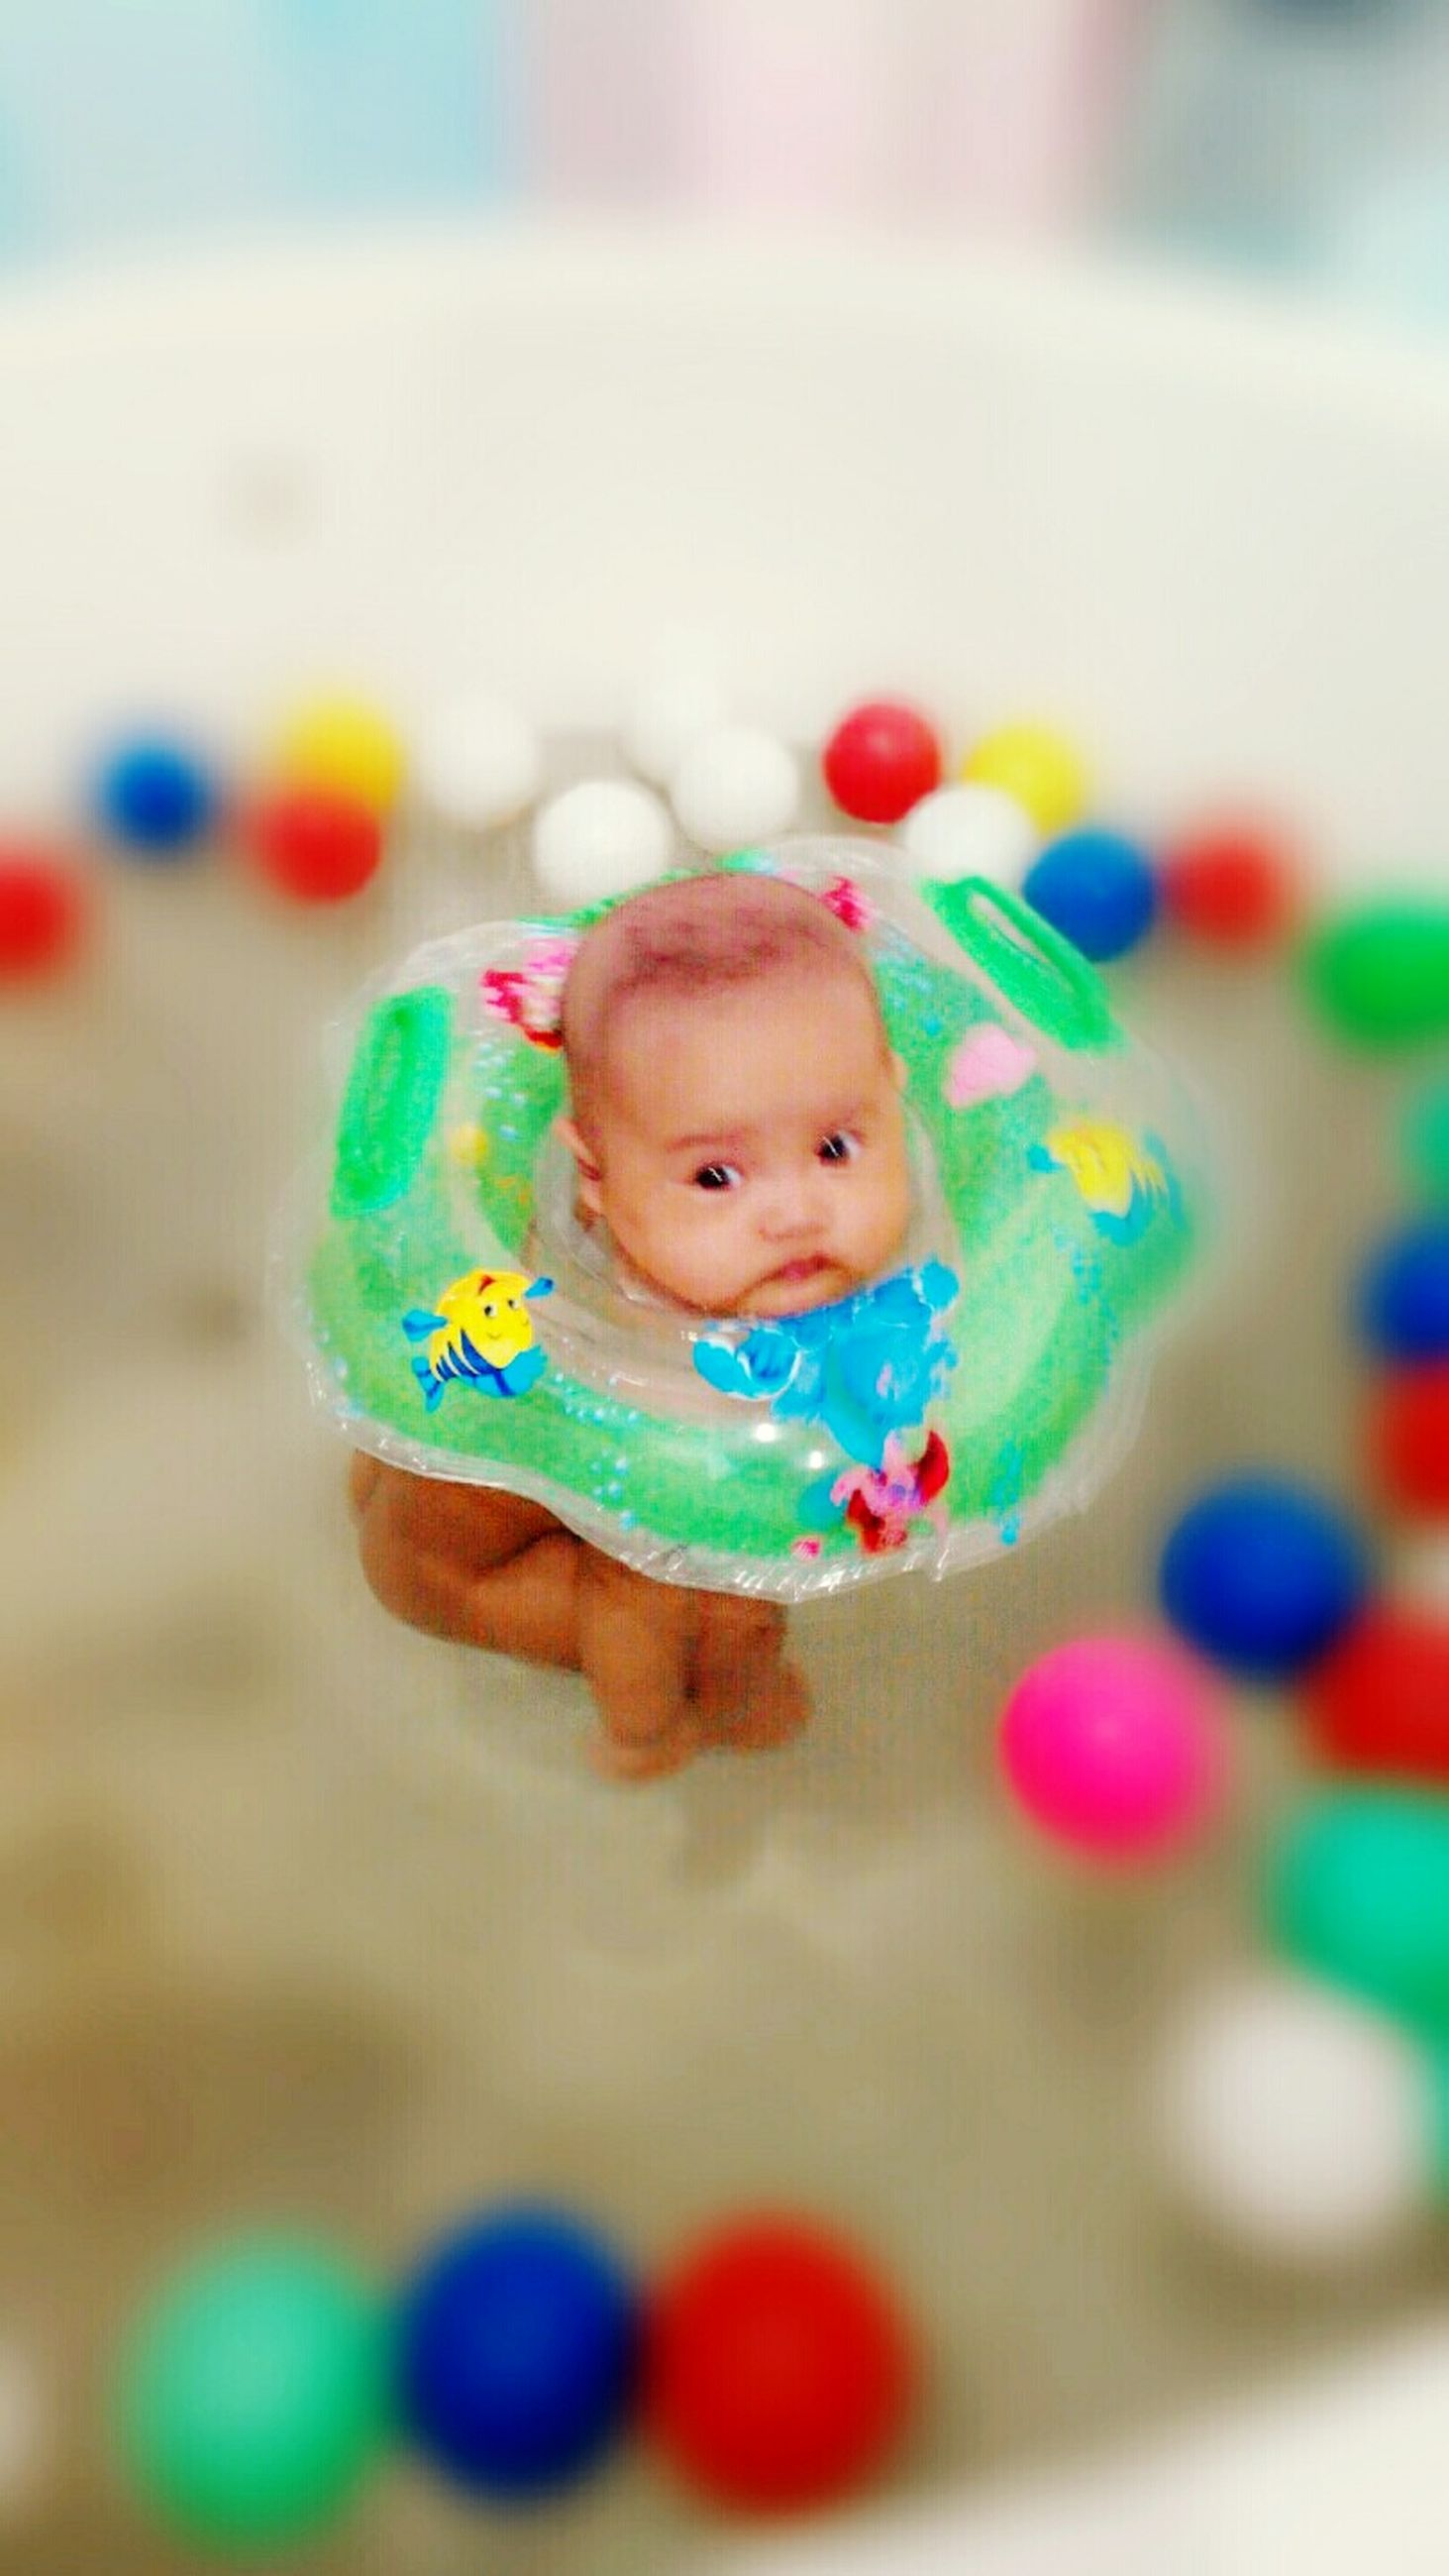 childhood, elementary age, innocence, boys, cute, girls, multi colored, playful, toy, babyhood, playing, toddler, baby, leisure activity, fun, person, focus on foreground, selective focus